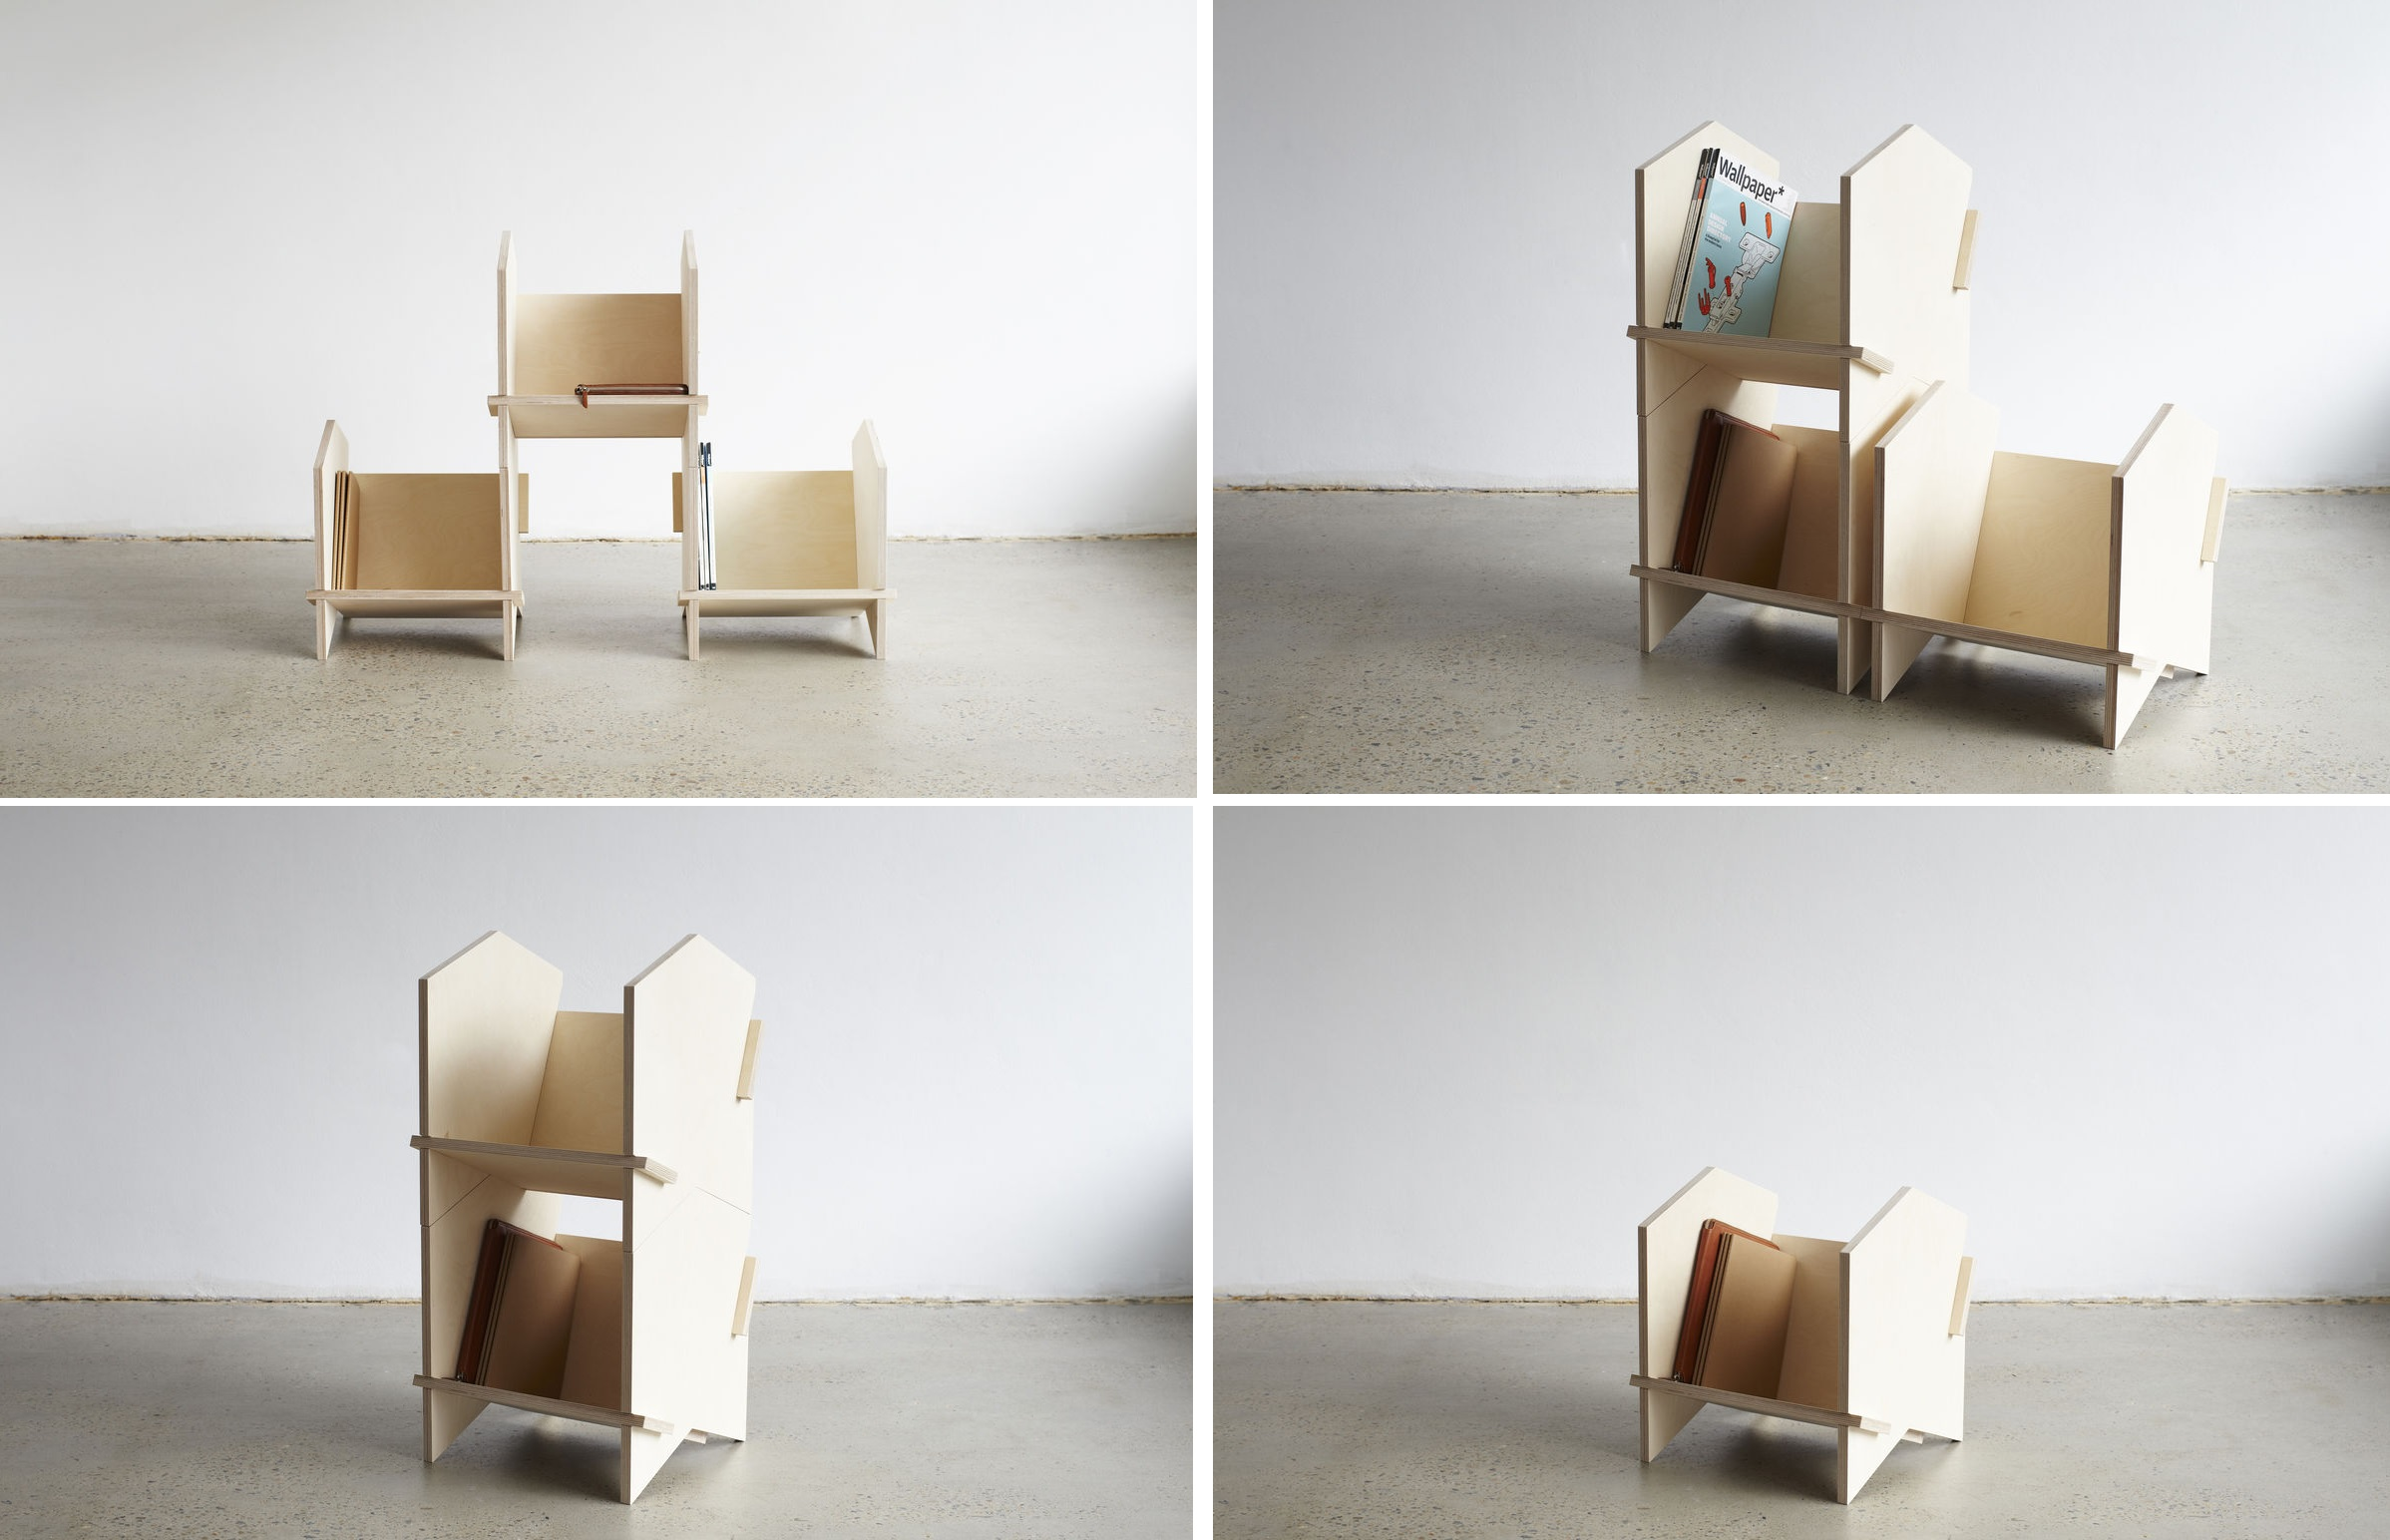 Stackable Furniture Designs That Solve Major Problems By Being